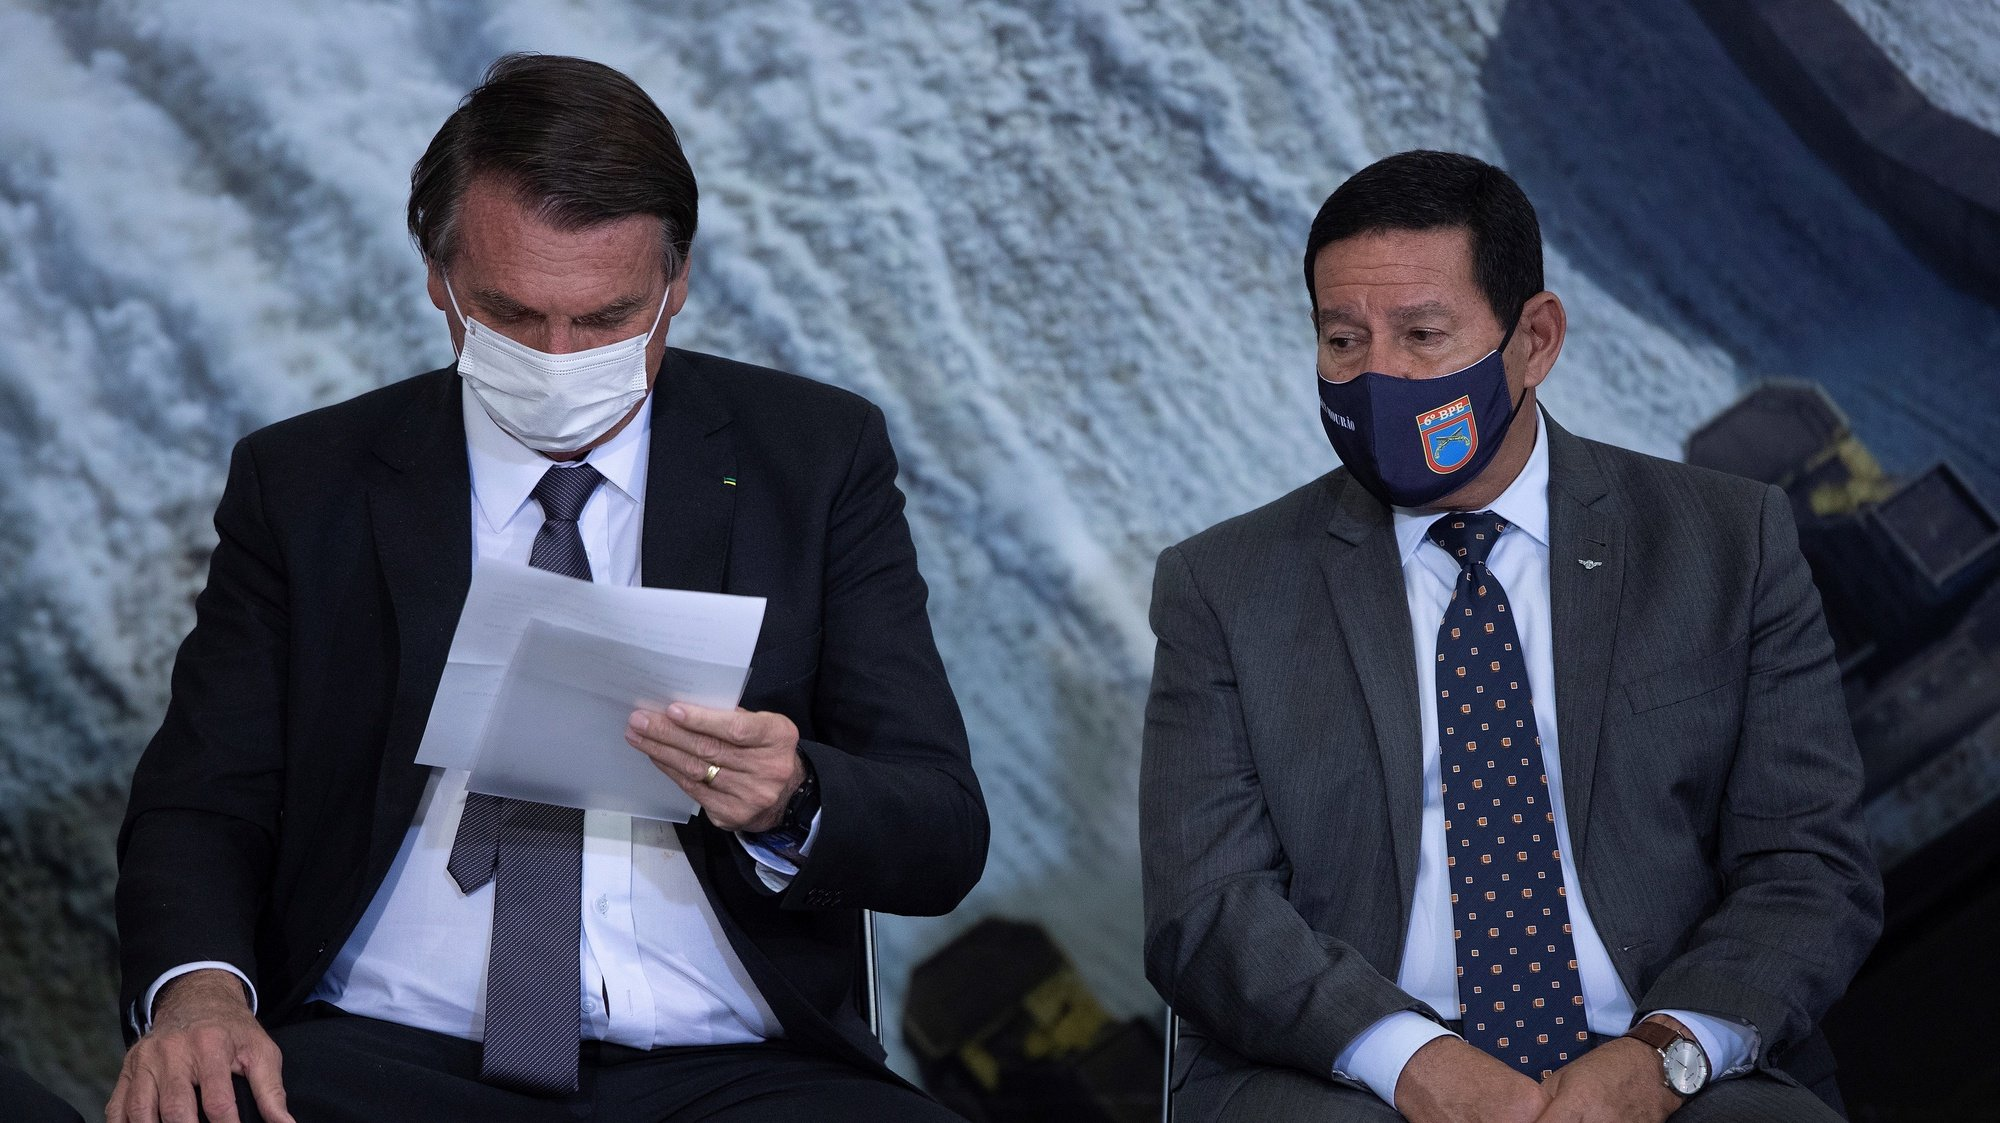 epa09343160 The President of Brazil, Jair Bolsonaro, and the Vice President Hamilton Mourao (R) take part in the sanction ceremony of the Eletrobras Capitalization Law, at the Planalto Palace in Brasilia, Brazil, 13 July 2021. Bolsonaro sanctioned with some vetoes the Provisional Measure that regulates the privatization process of the state giant Eletrobras, the largest electricity company in Latin America, according to the Official Gazette of the Union published on 13 July.  EPA/Joedson Alves